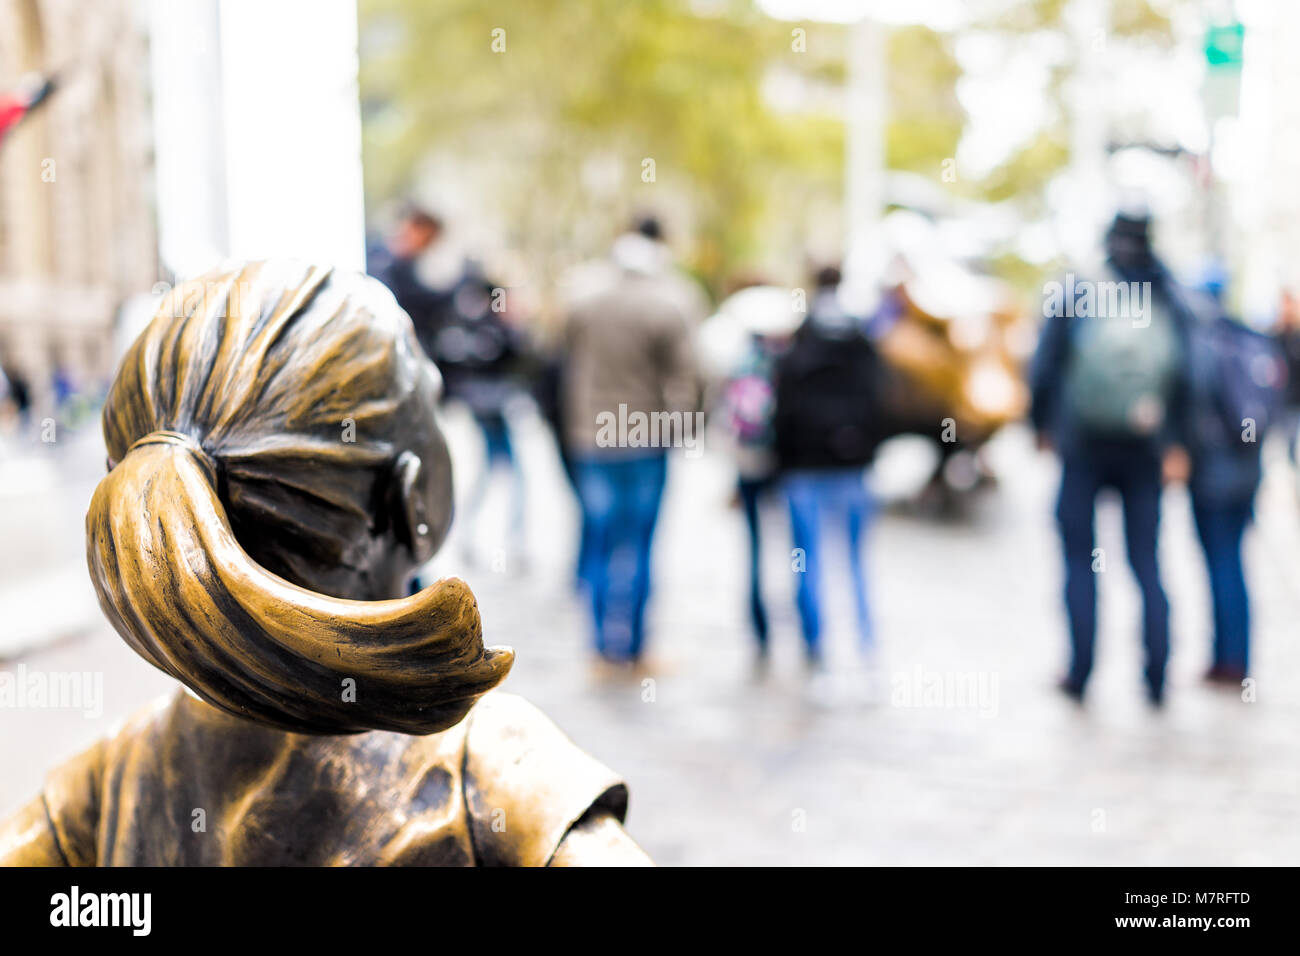 New York City, USA - October 30, 2017: Wall Street stock exchange The Fearless Girl statue facing Charging Bull - Stock Image